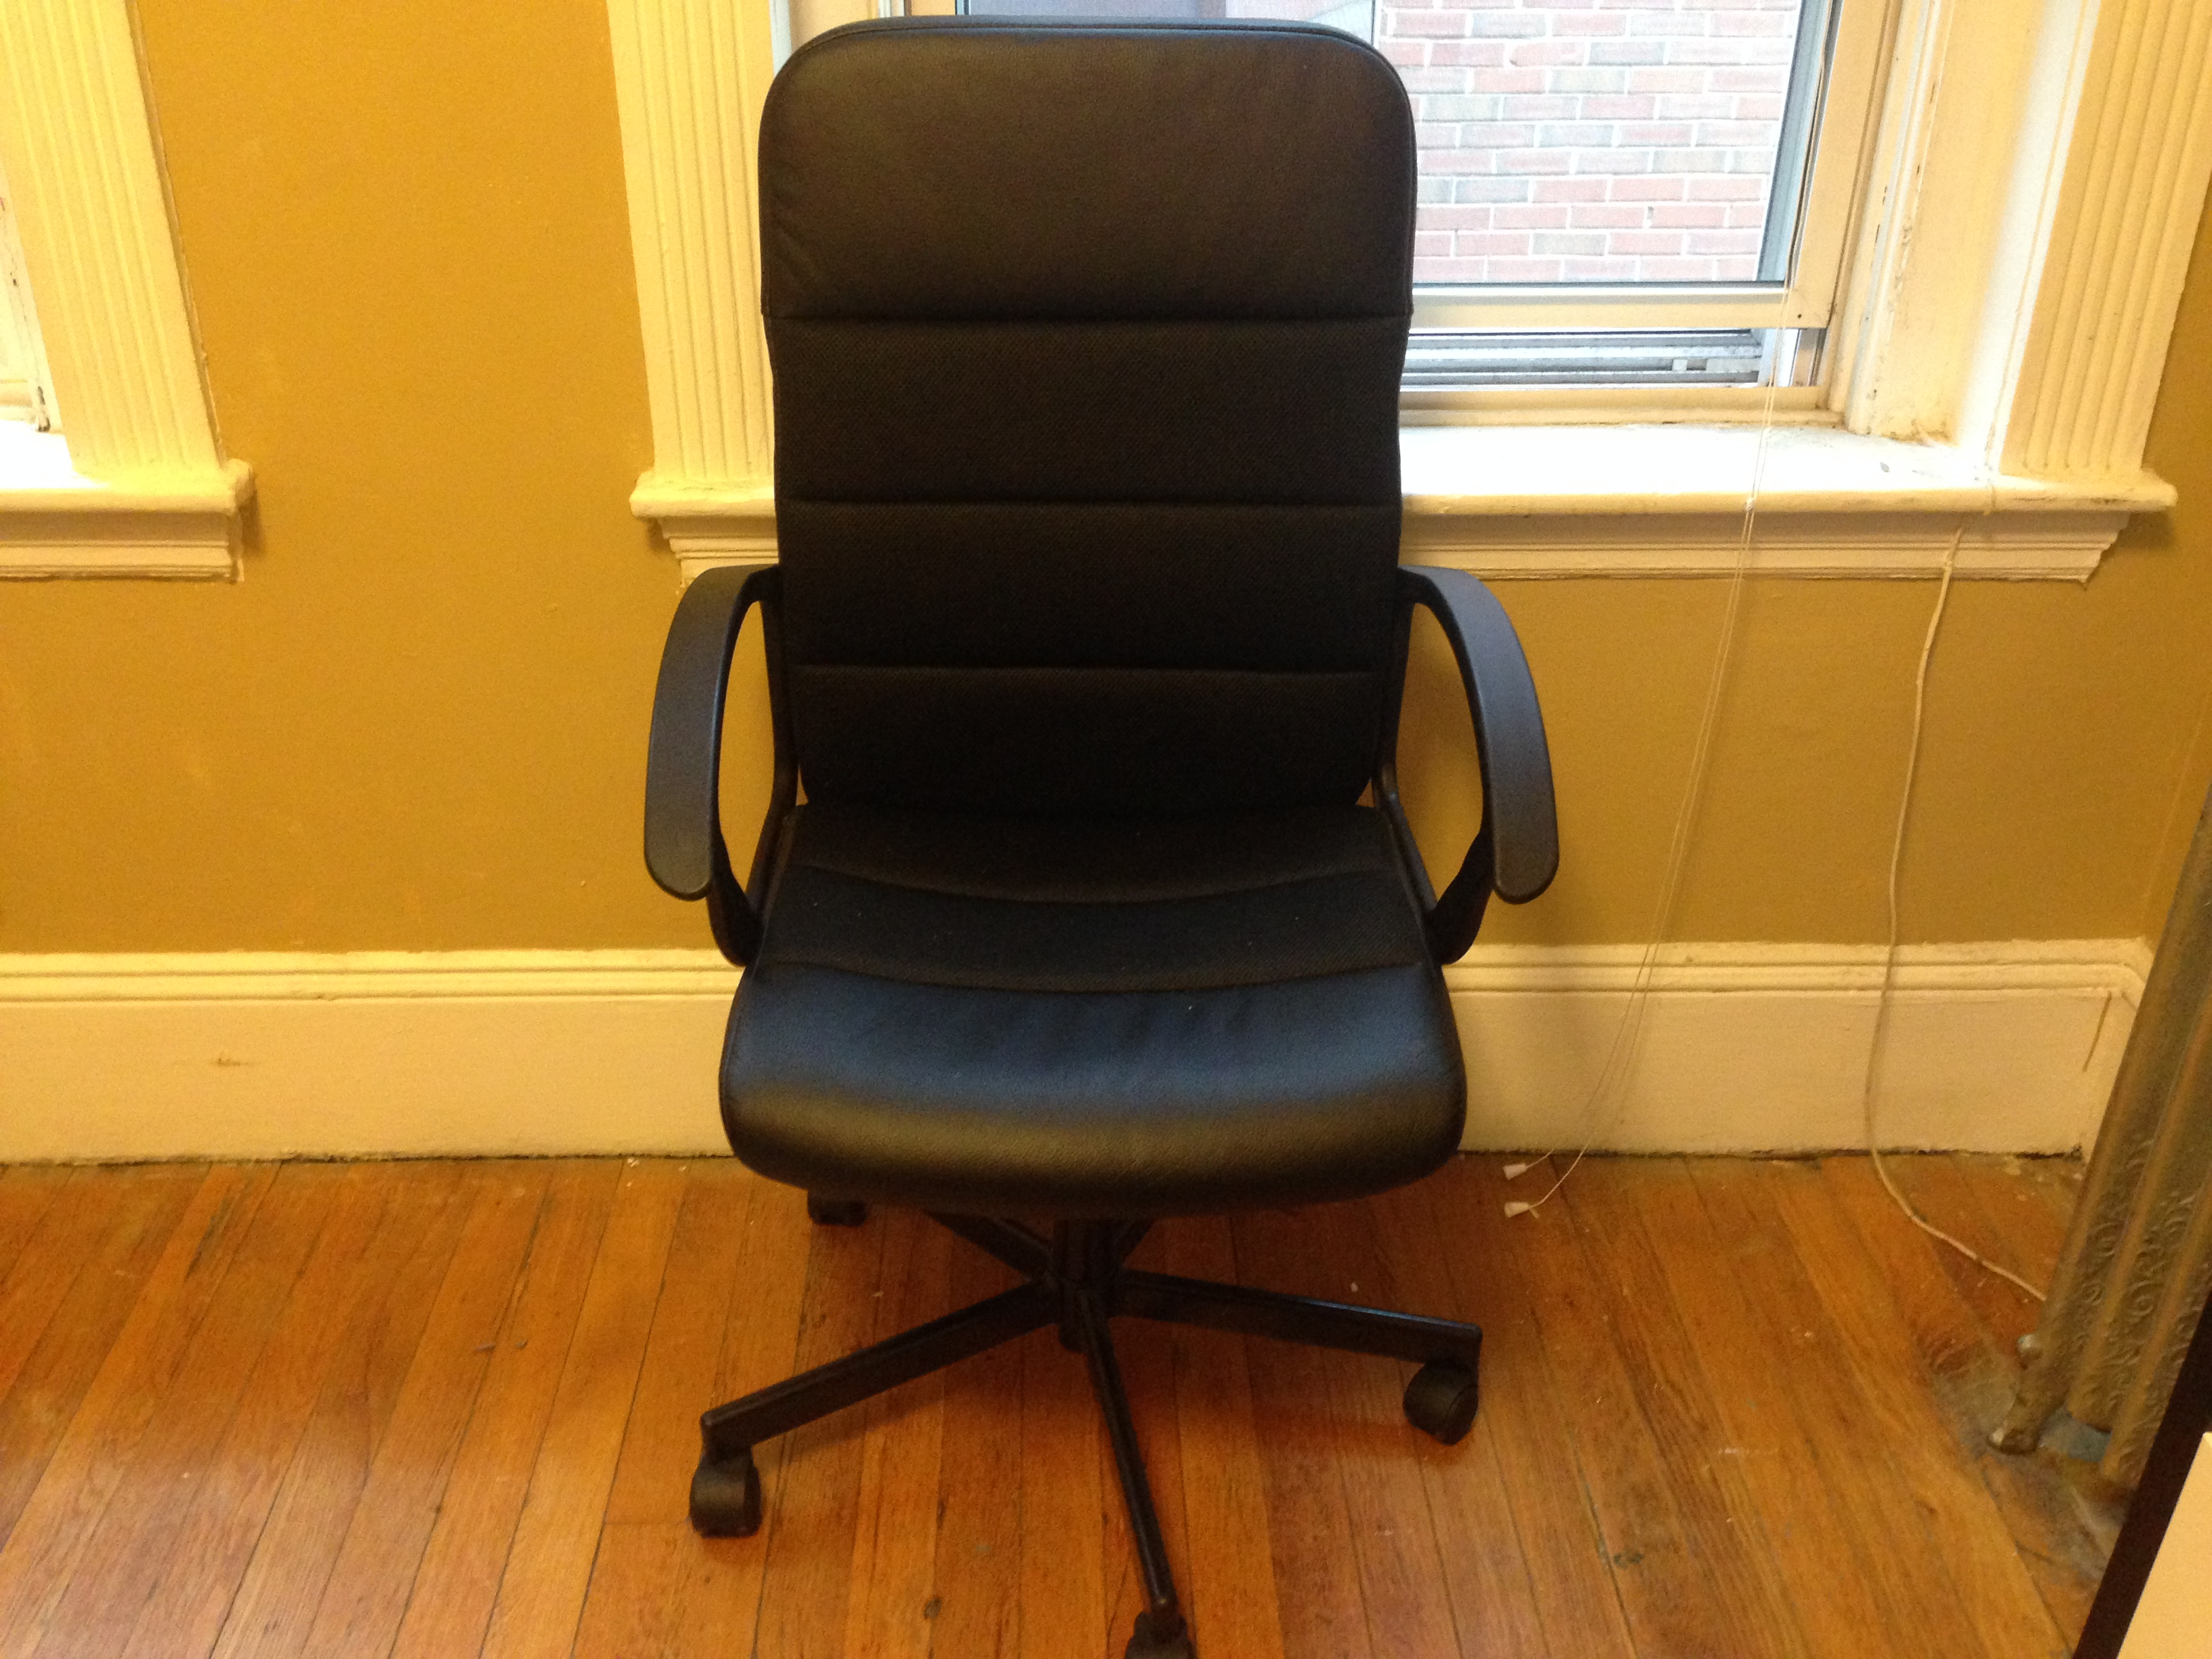 ikea recliner chairs sale wicker patio 50 off black fingal swivel chair 20  furniture